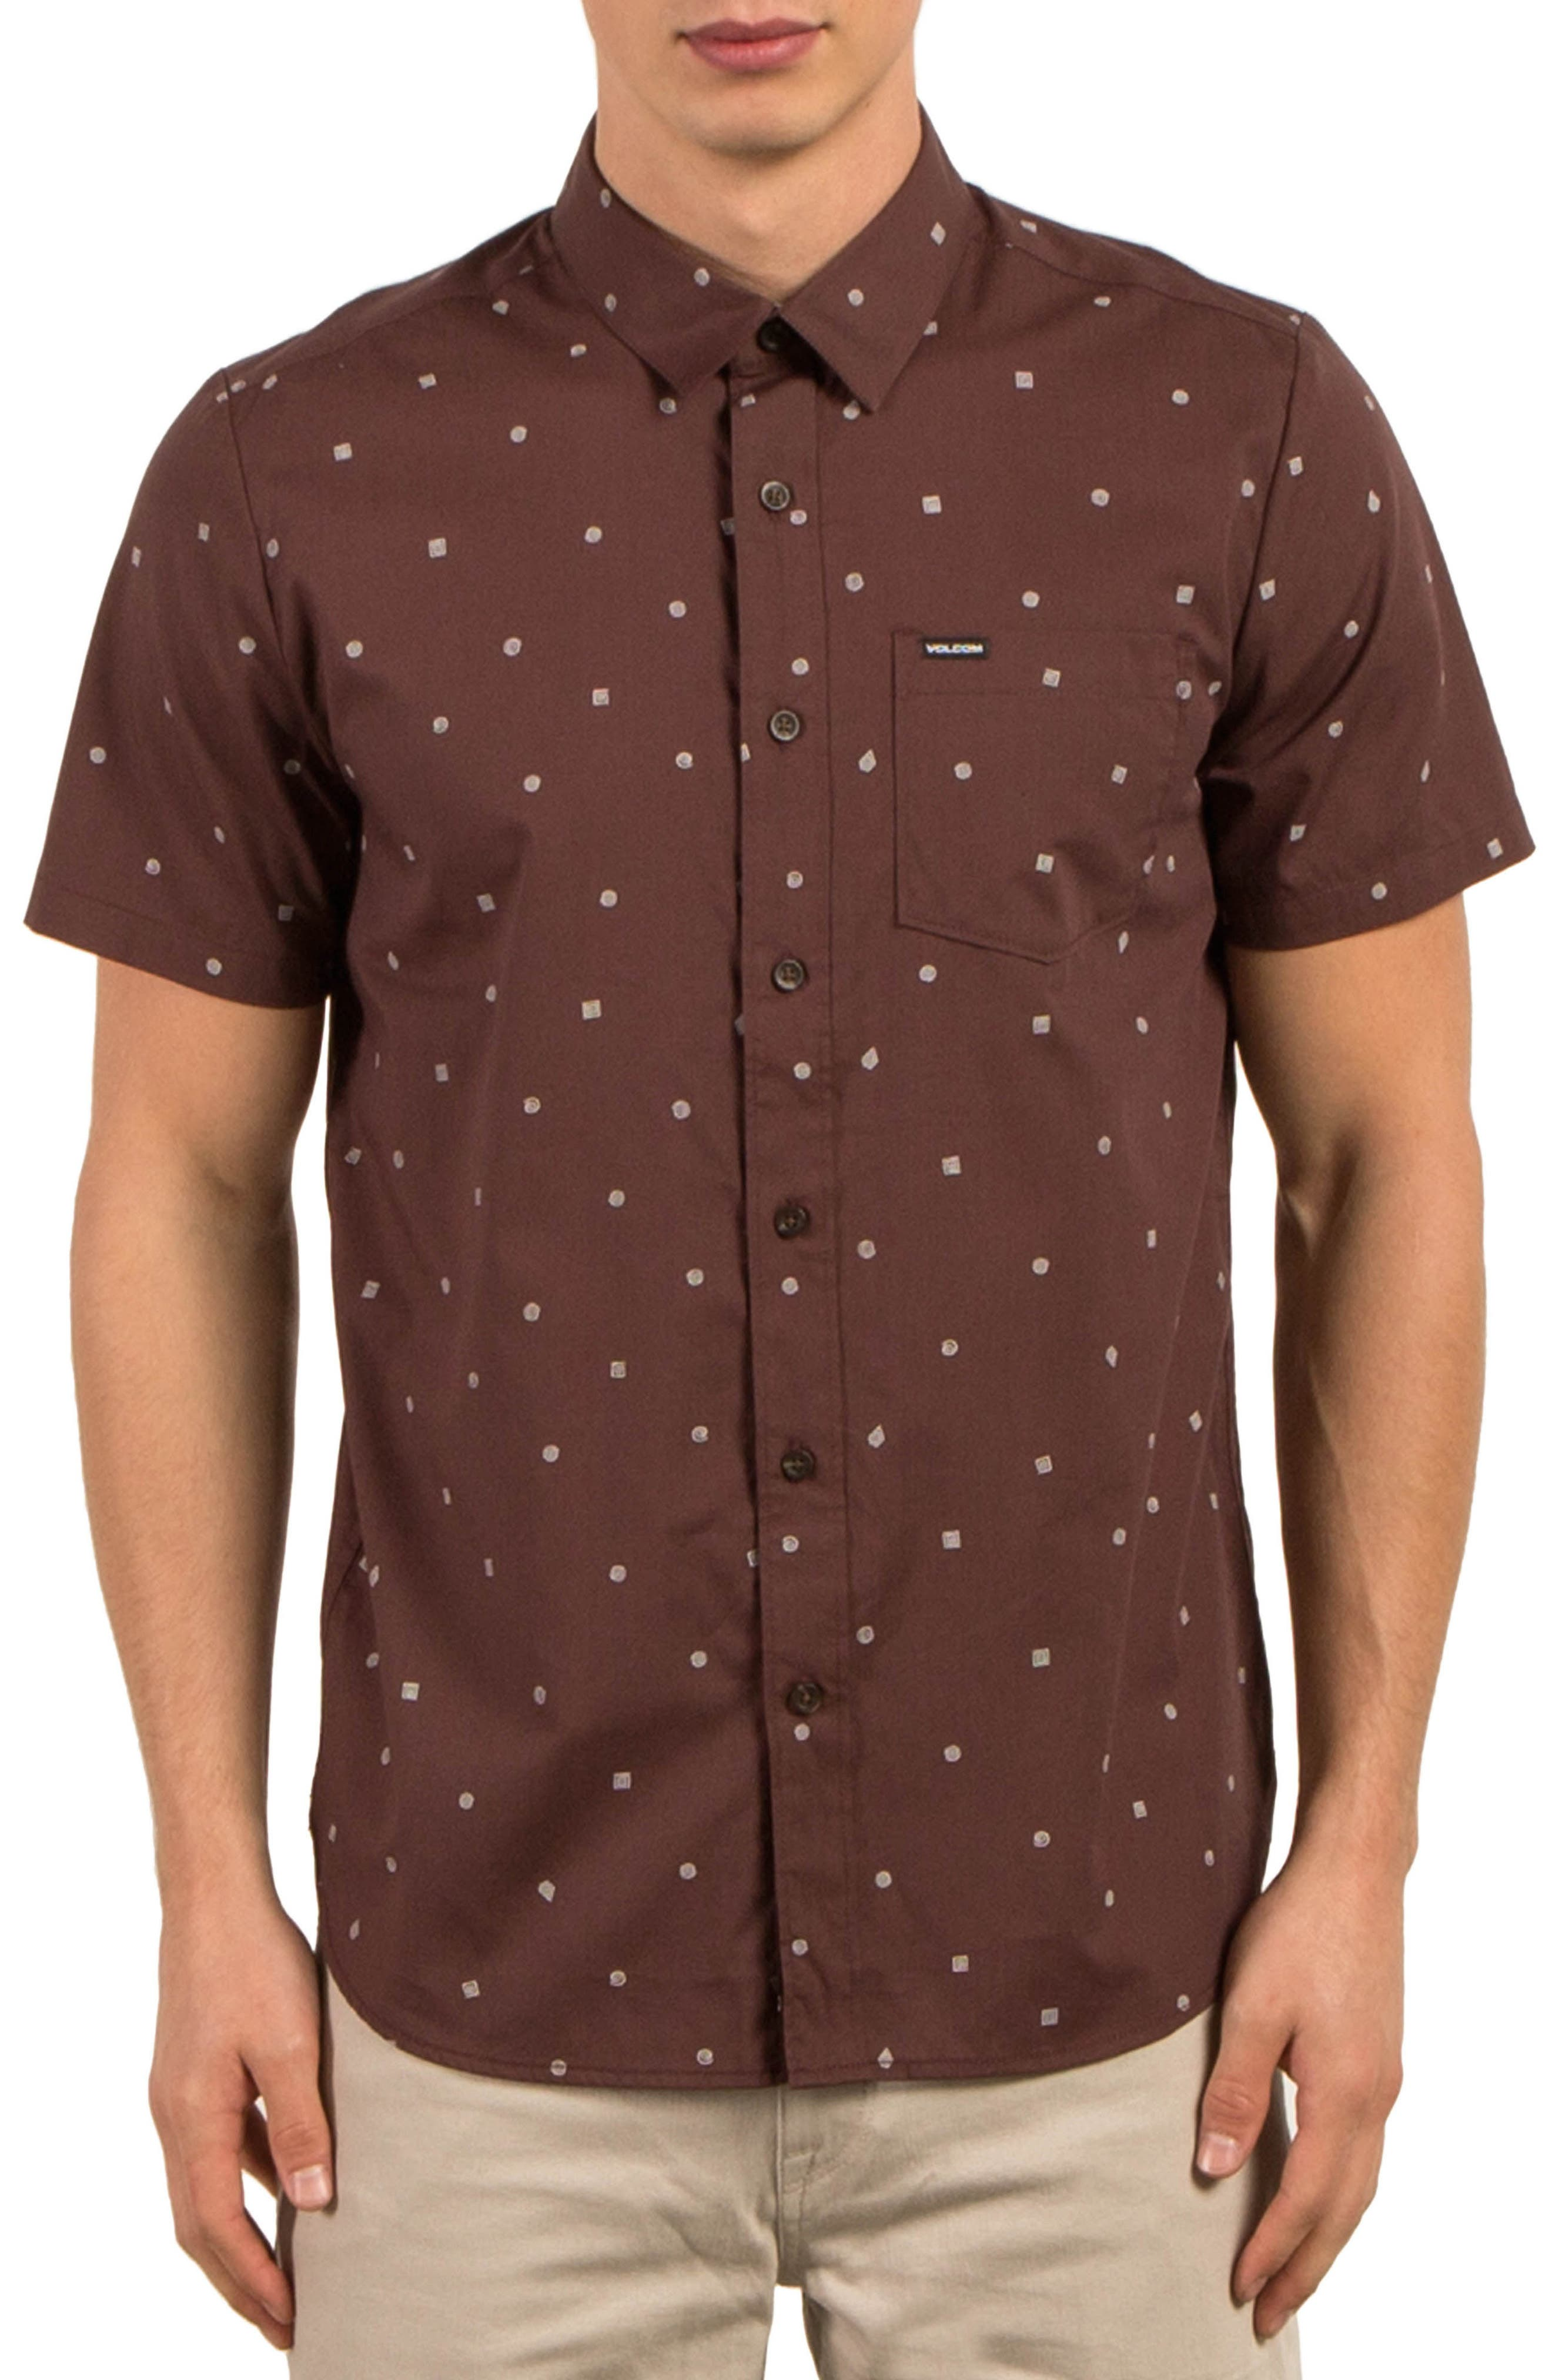 Alternate Image 1 Selected - Volcom High Ace Print Shirt